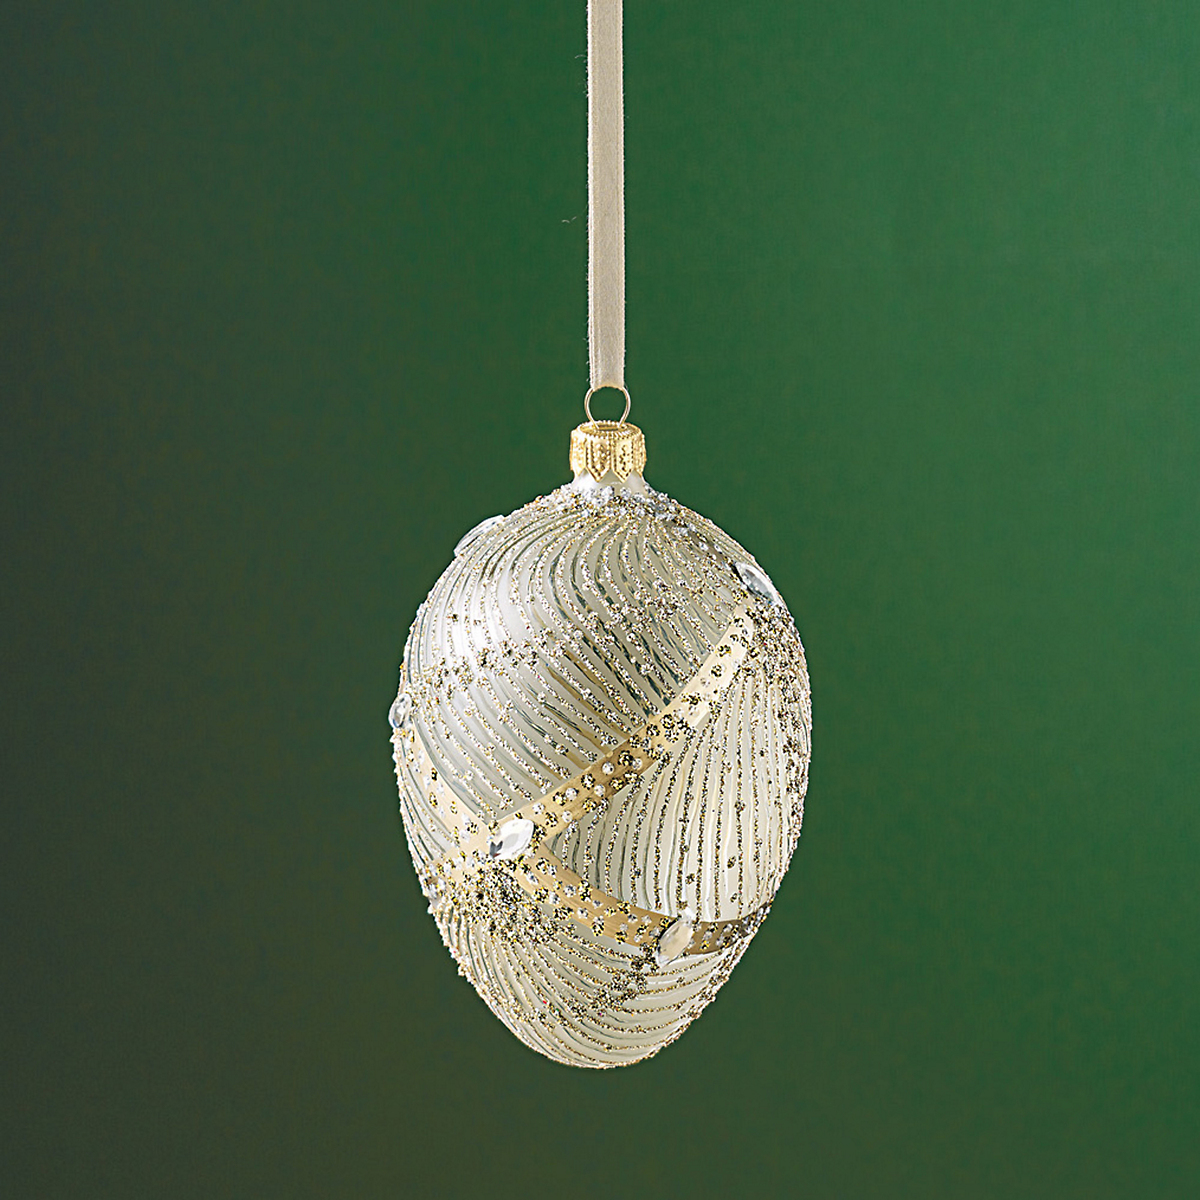 Silvered Egg Ornament